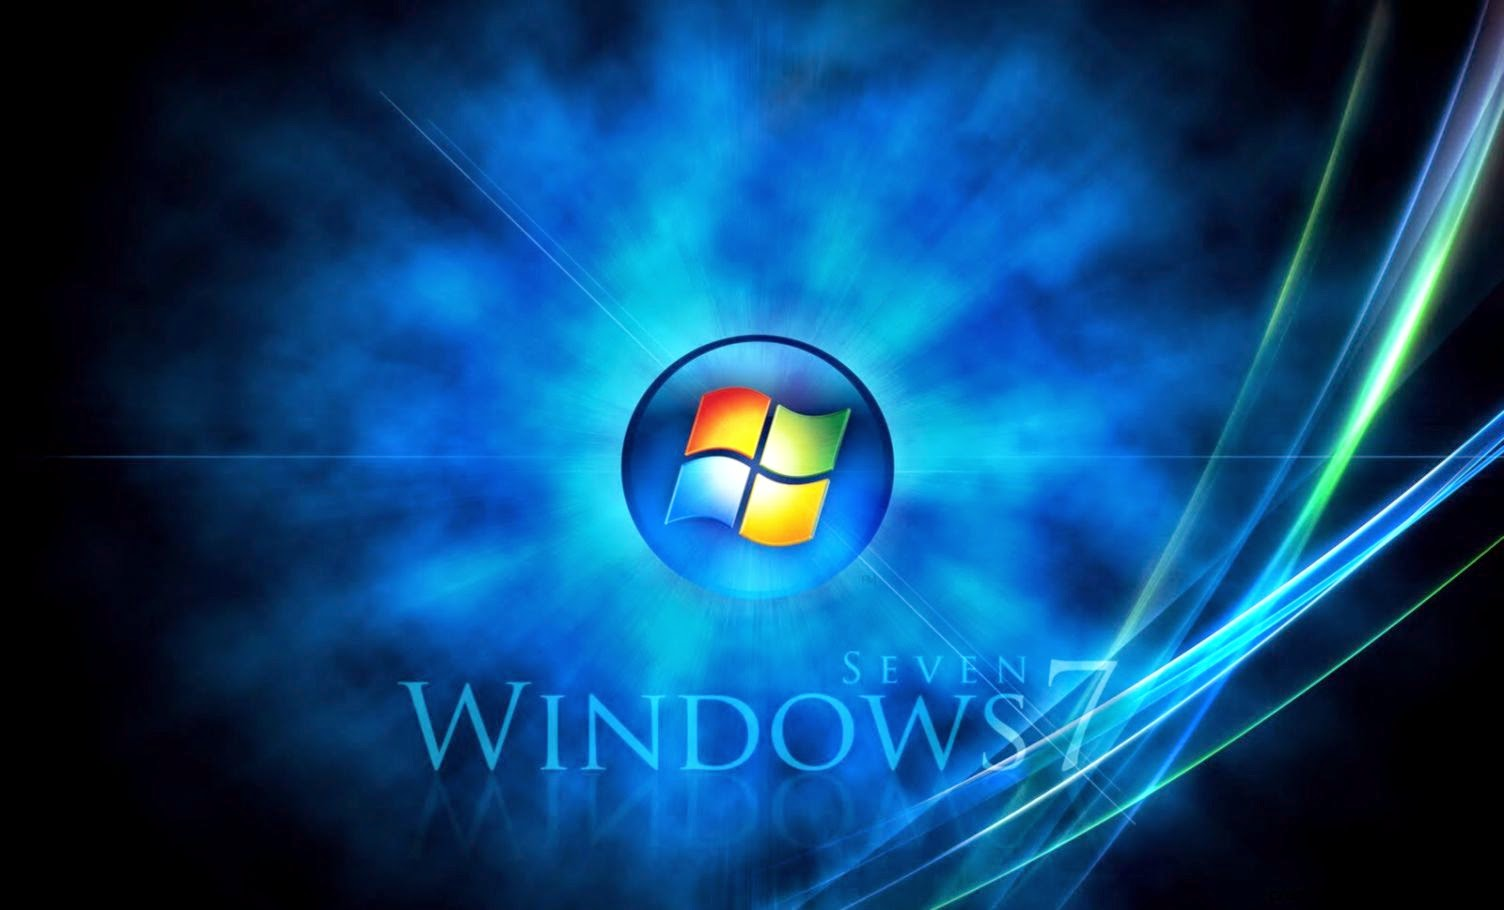 desktop background for windows 7 ultimate free download